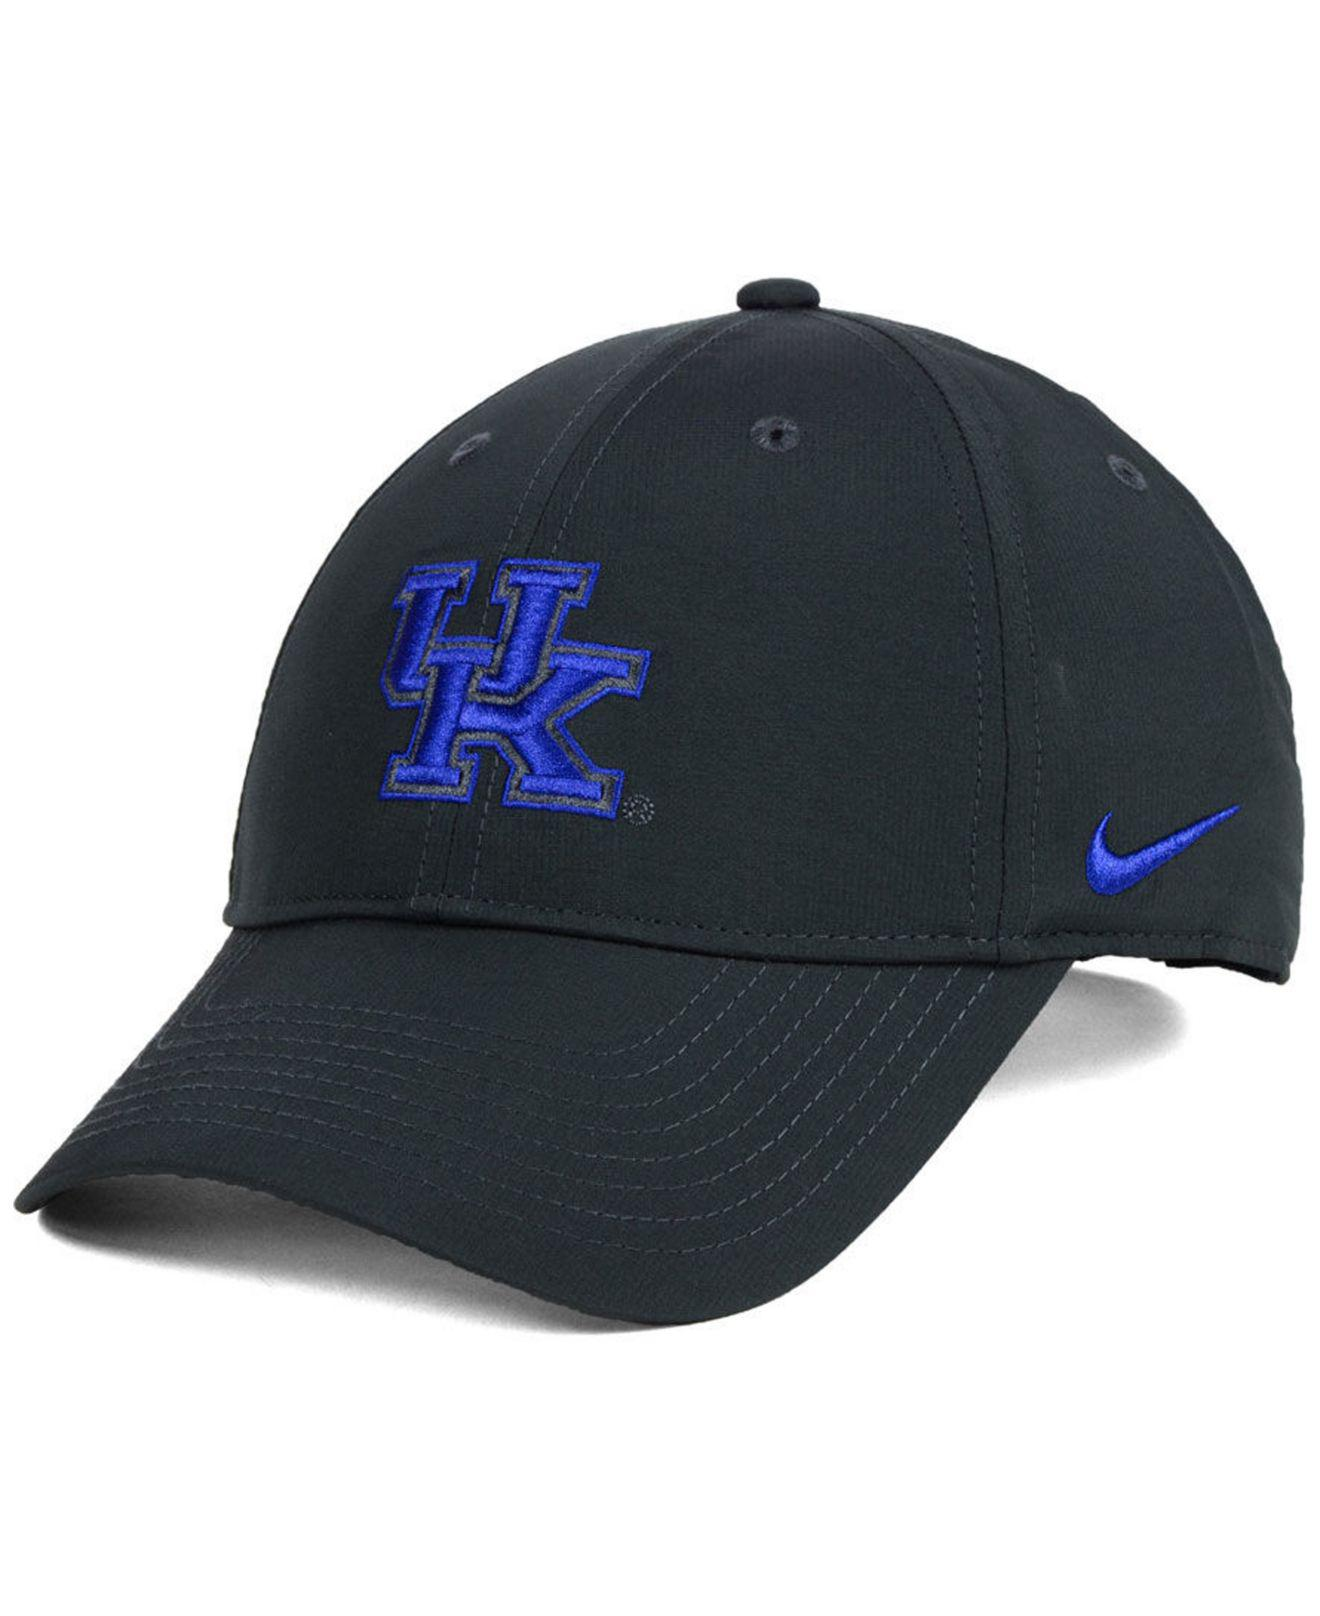 Lyst - Nike Kentucky Wildcats Dri-fit Adjustable Cap in Blue for Men bfceec4e9c21